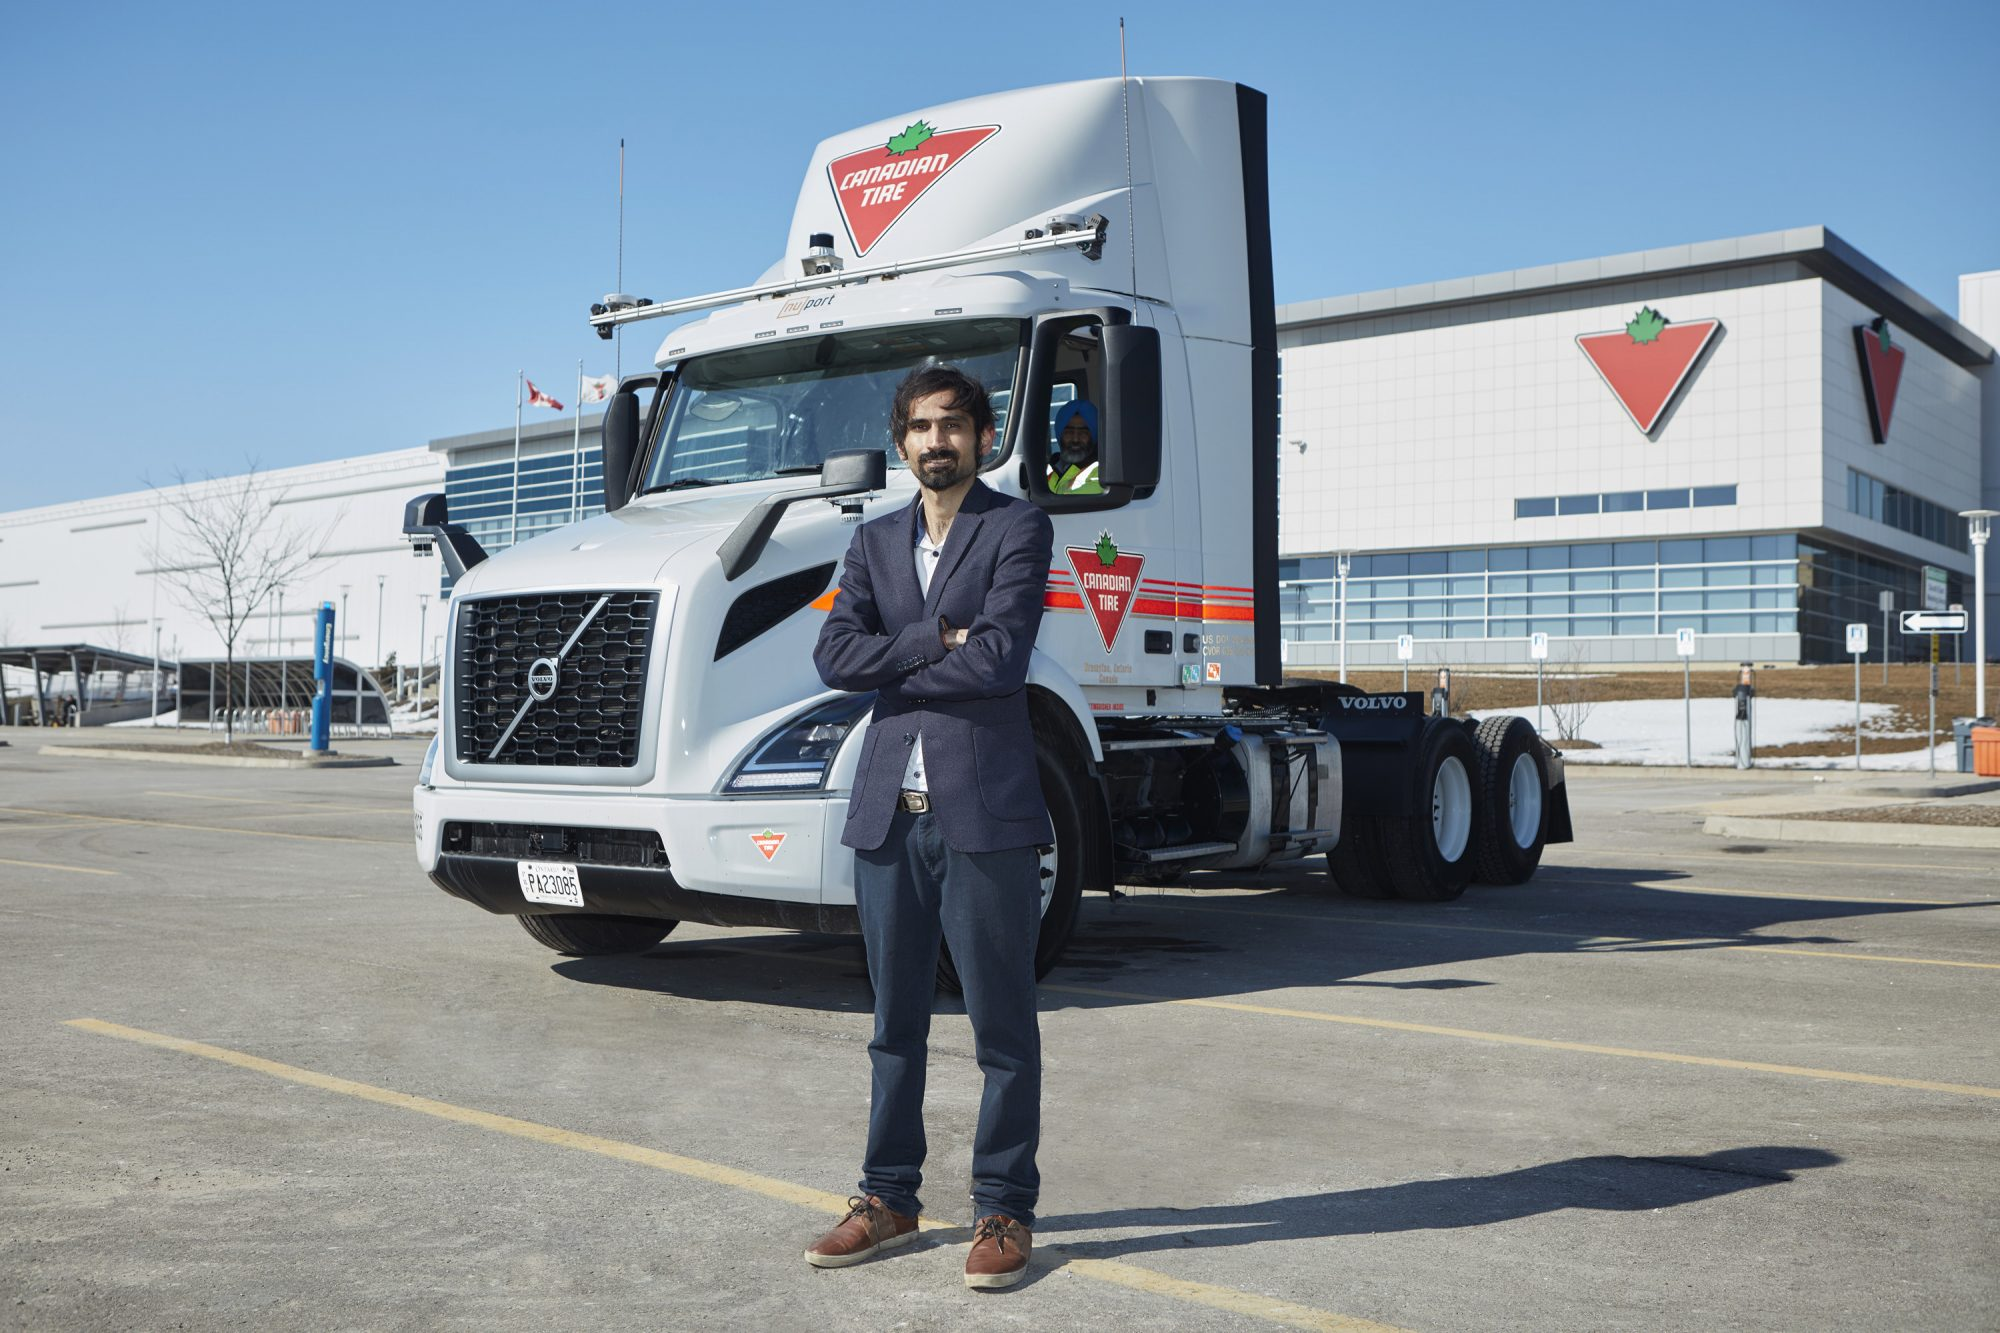 Canadian Tire, Toronto startup and Ontario government invest $3 million in automated trucking tech thumbnail